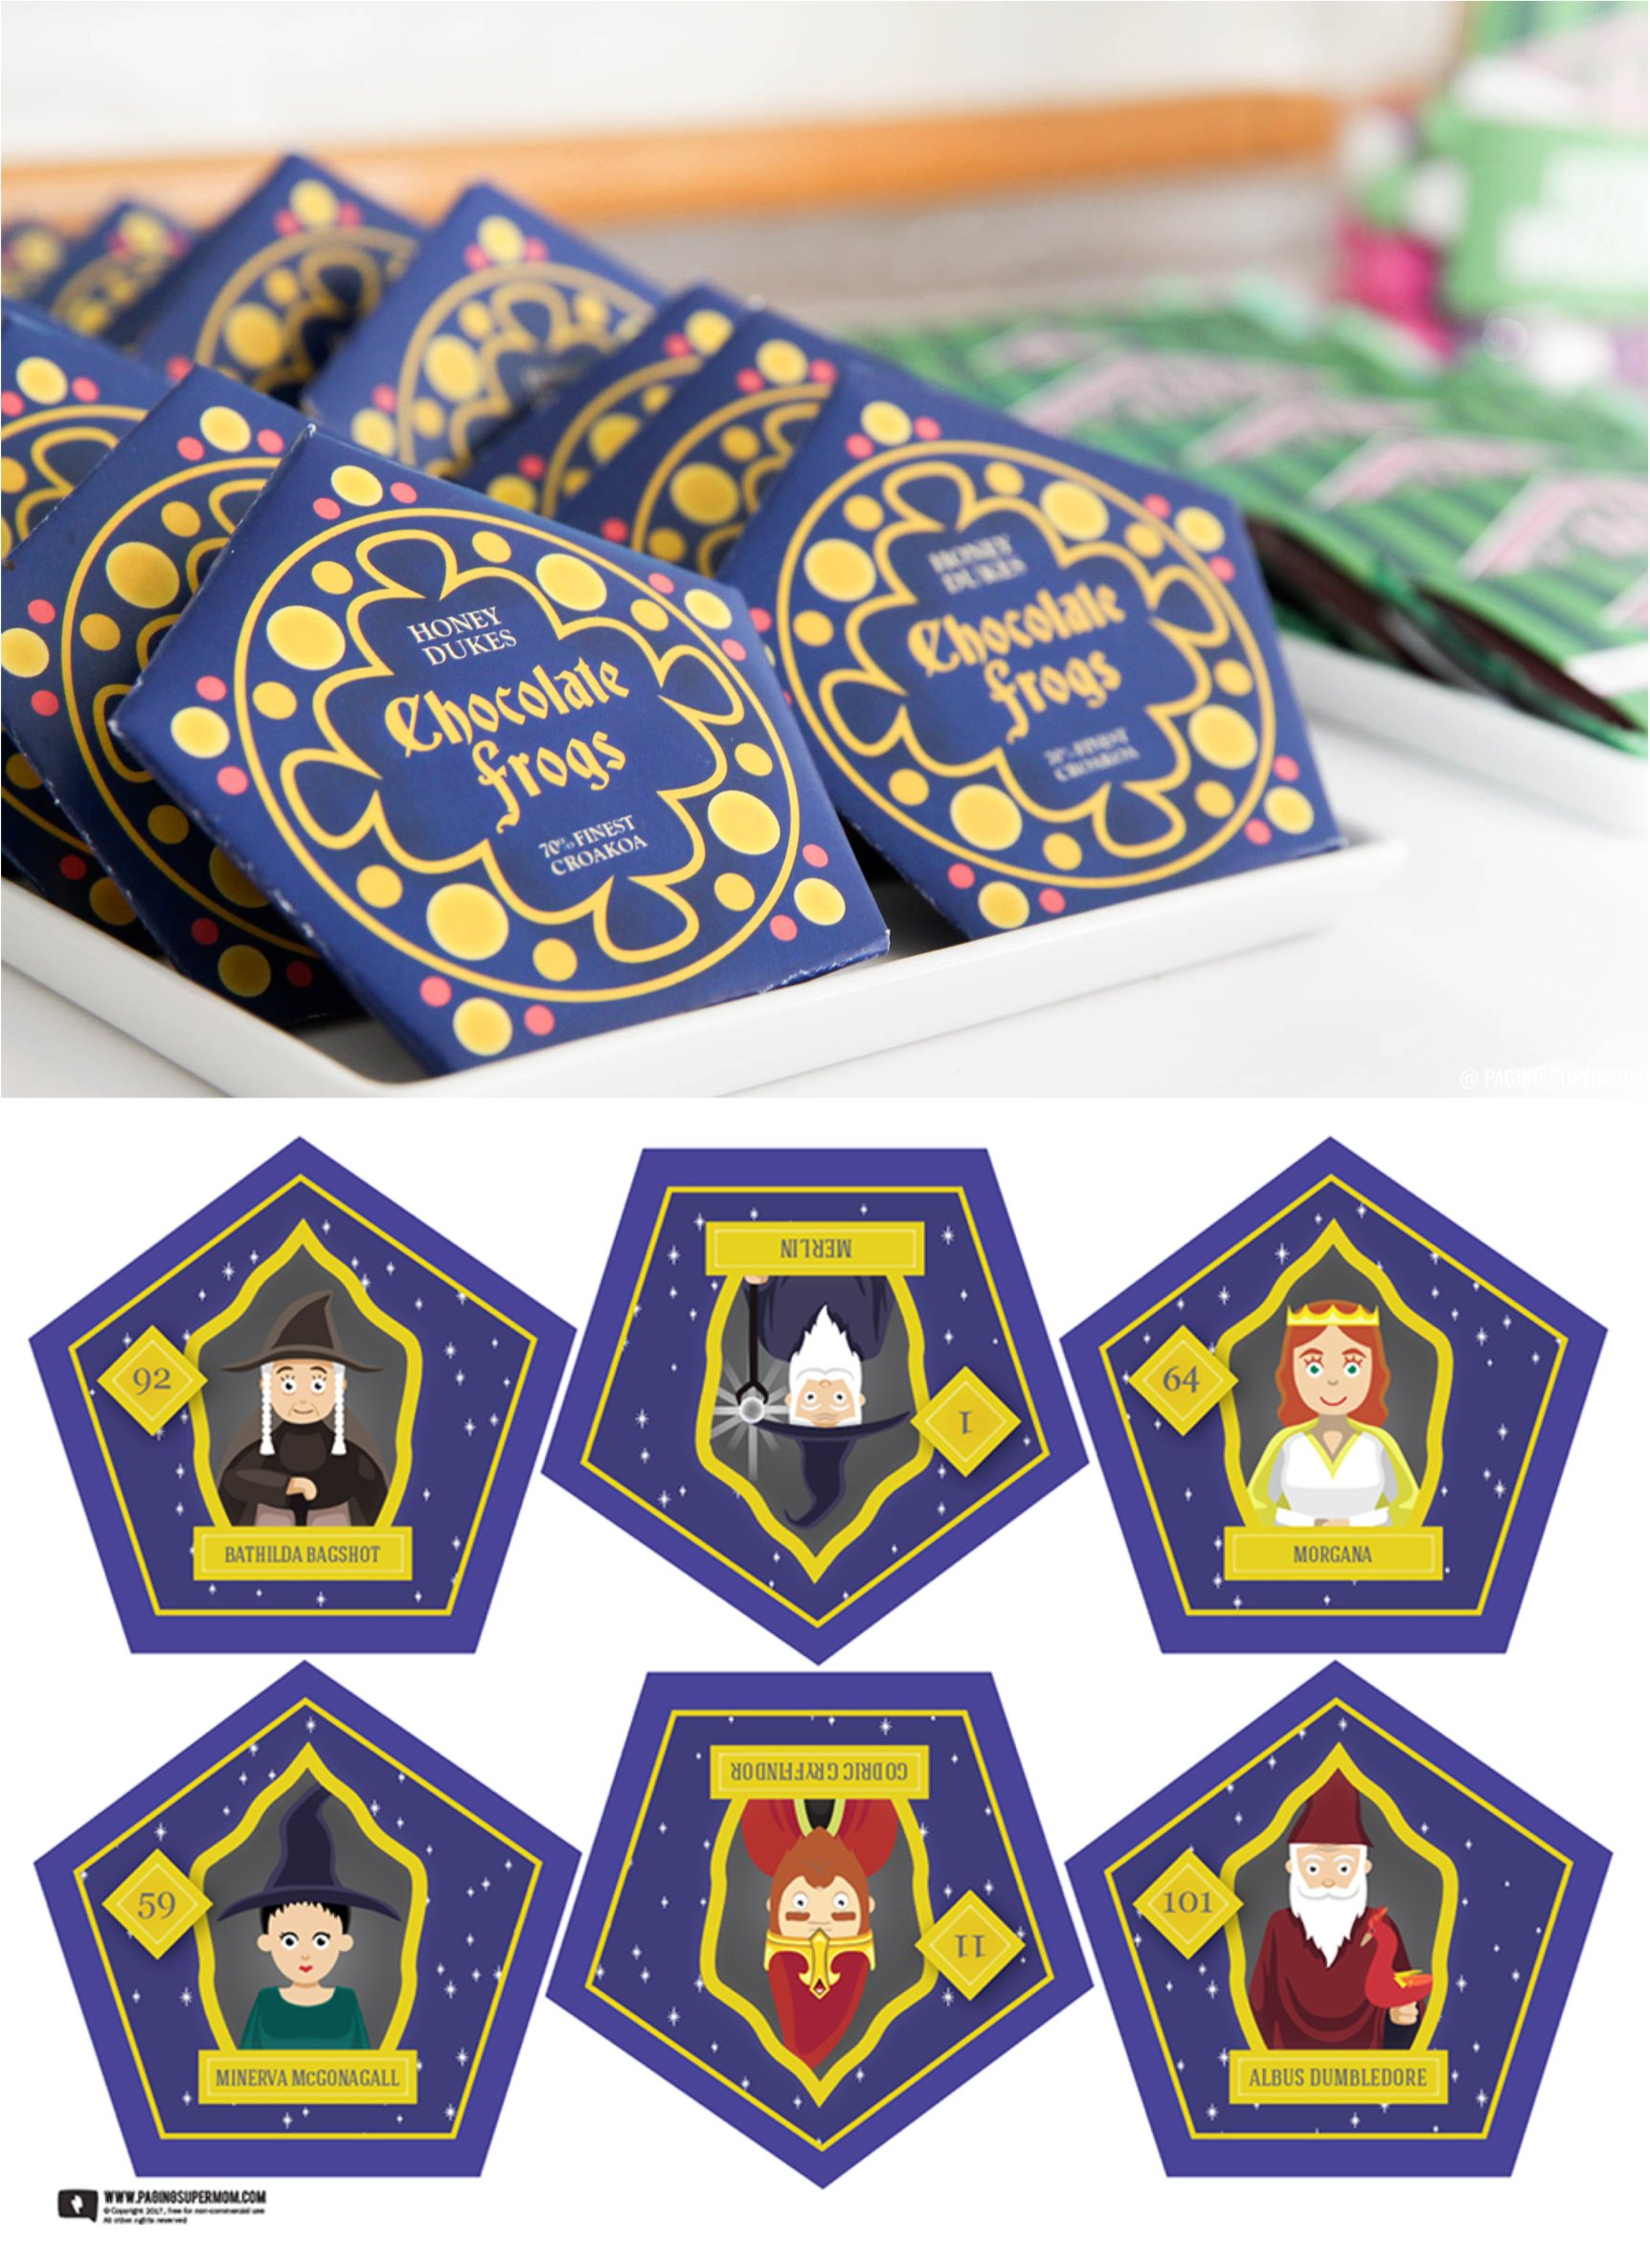 Free Chocolate Frogs Template For A Harry Potter Party The Printable Packaging